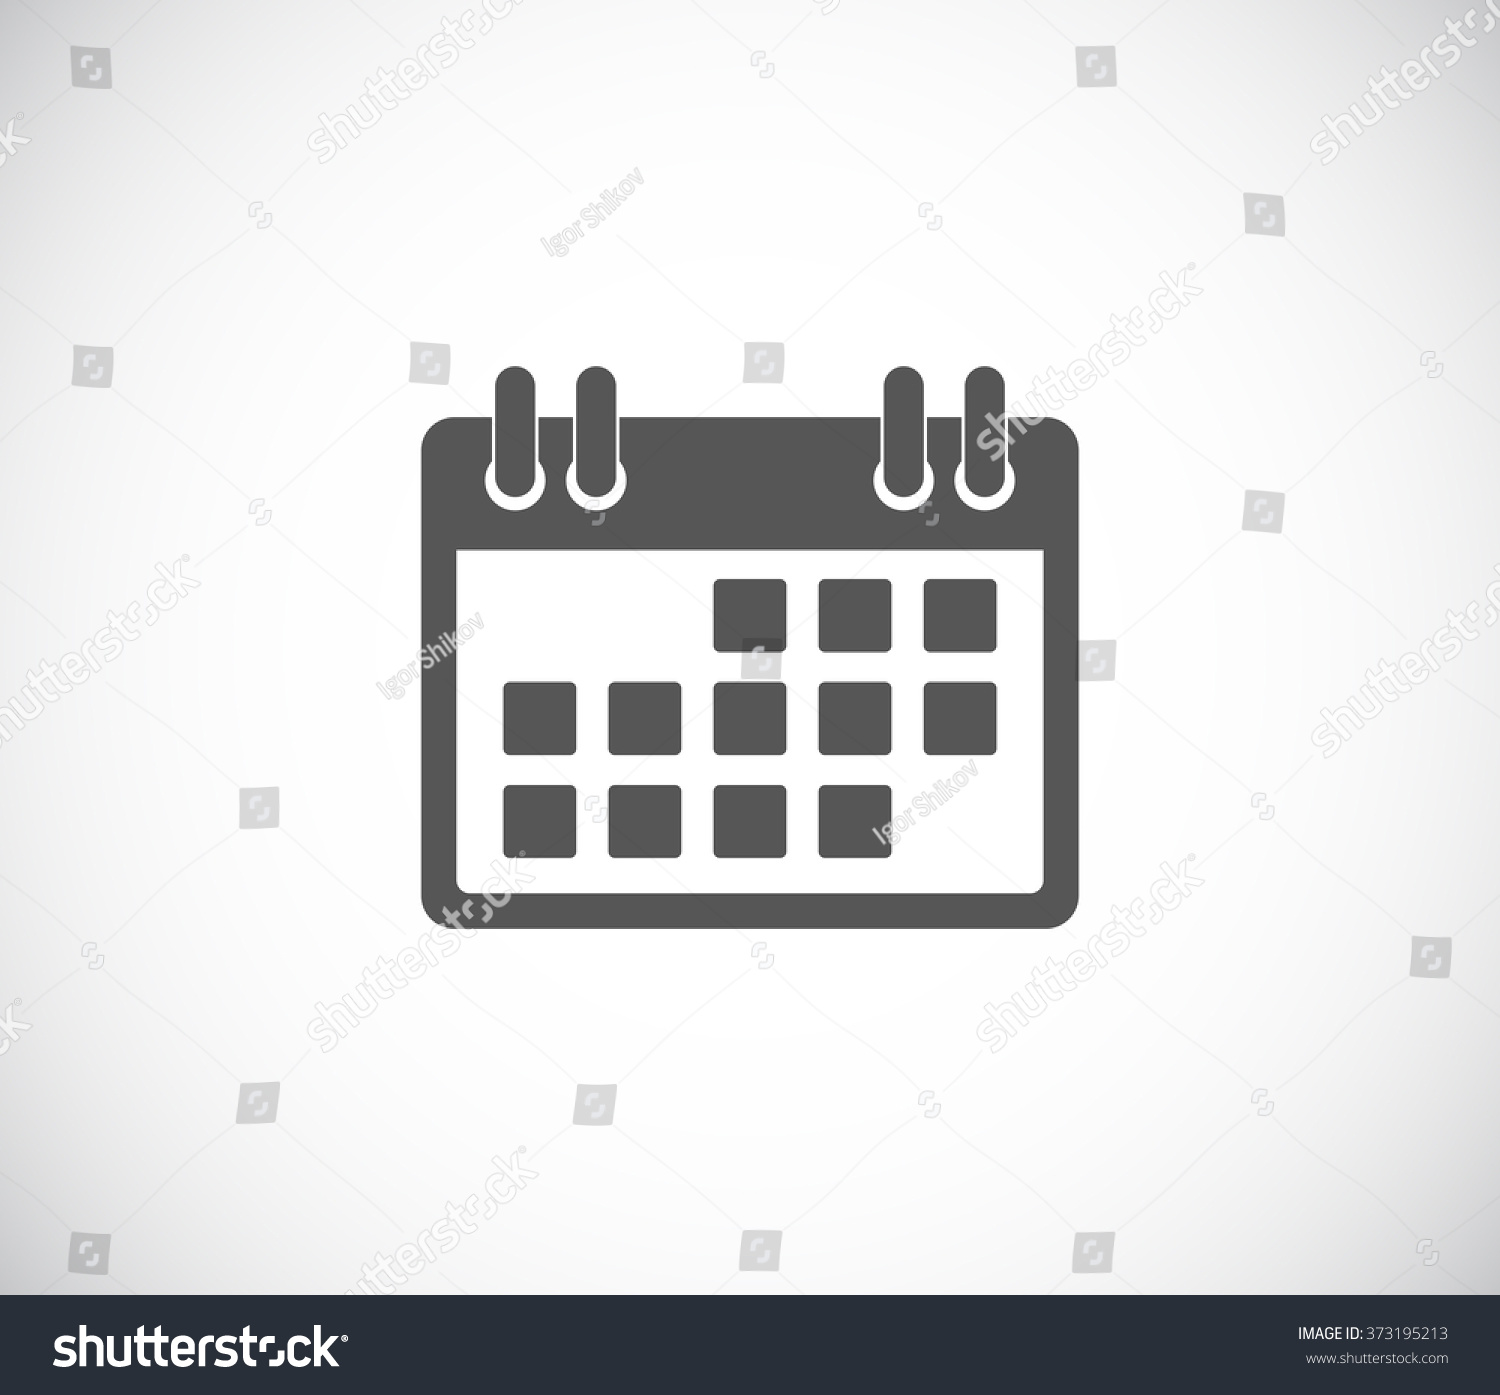 Calendar Web Icon : Calendar web icon stock vector illustration